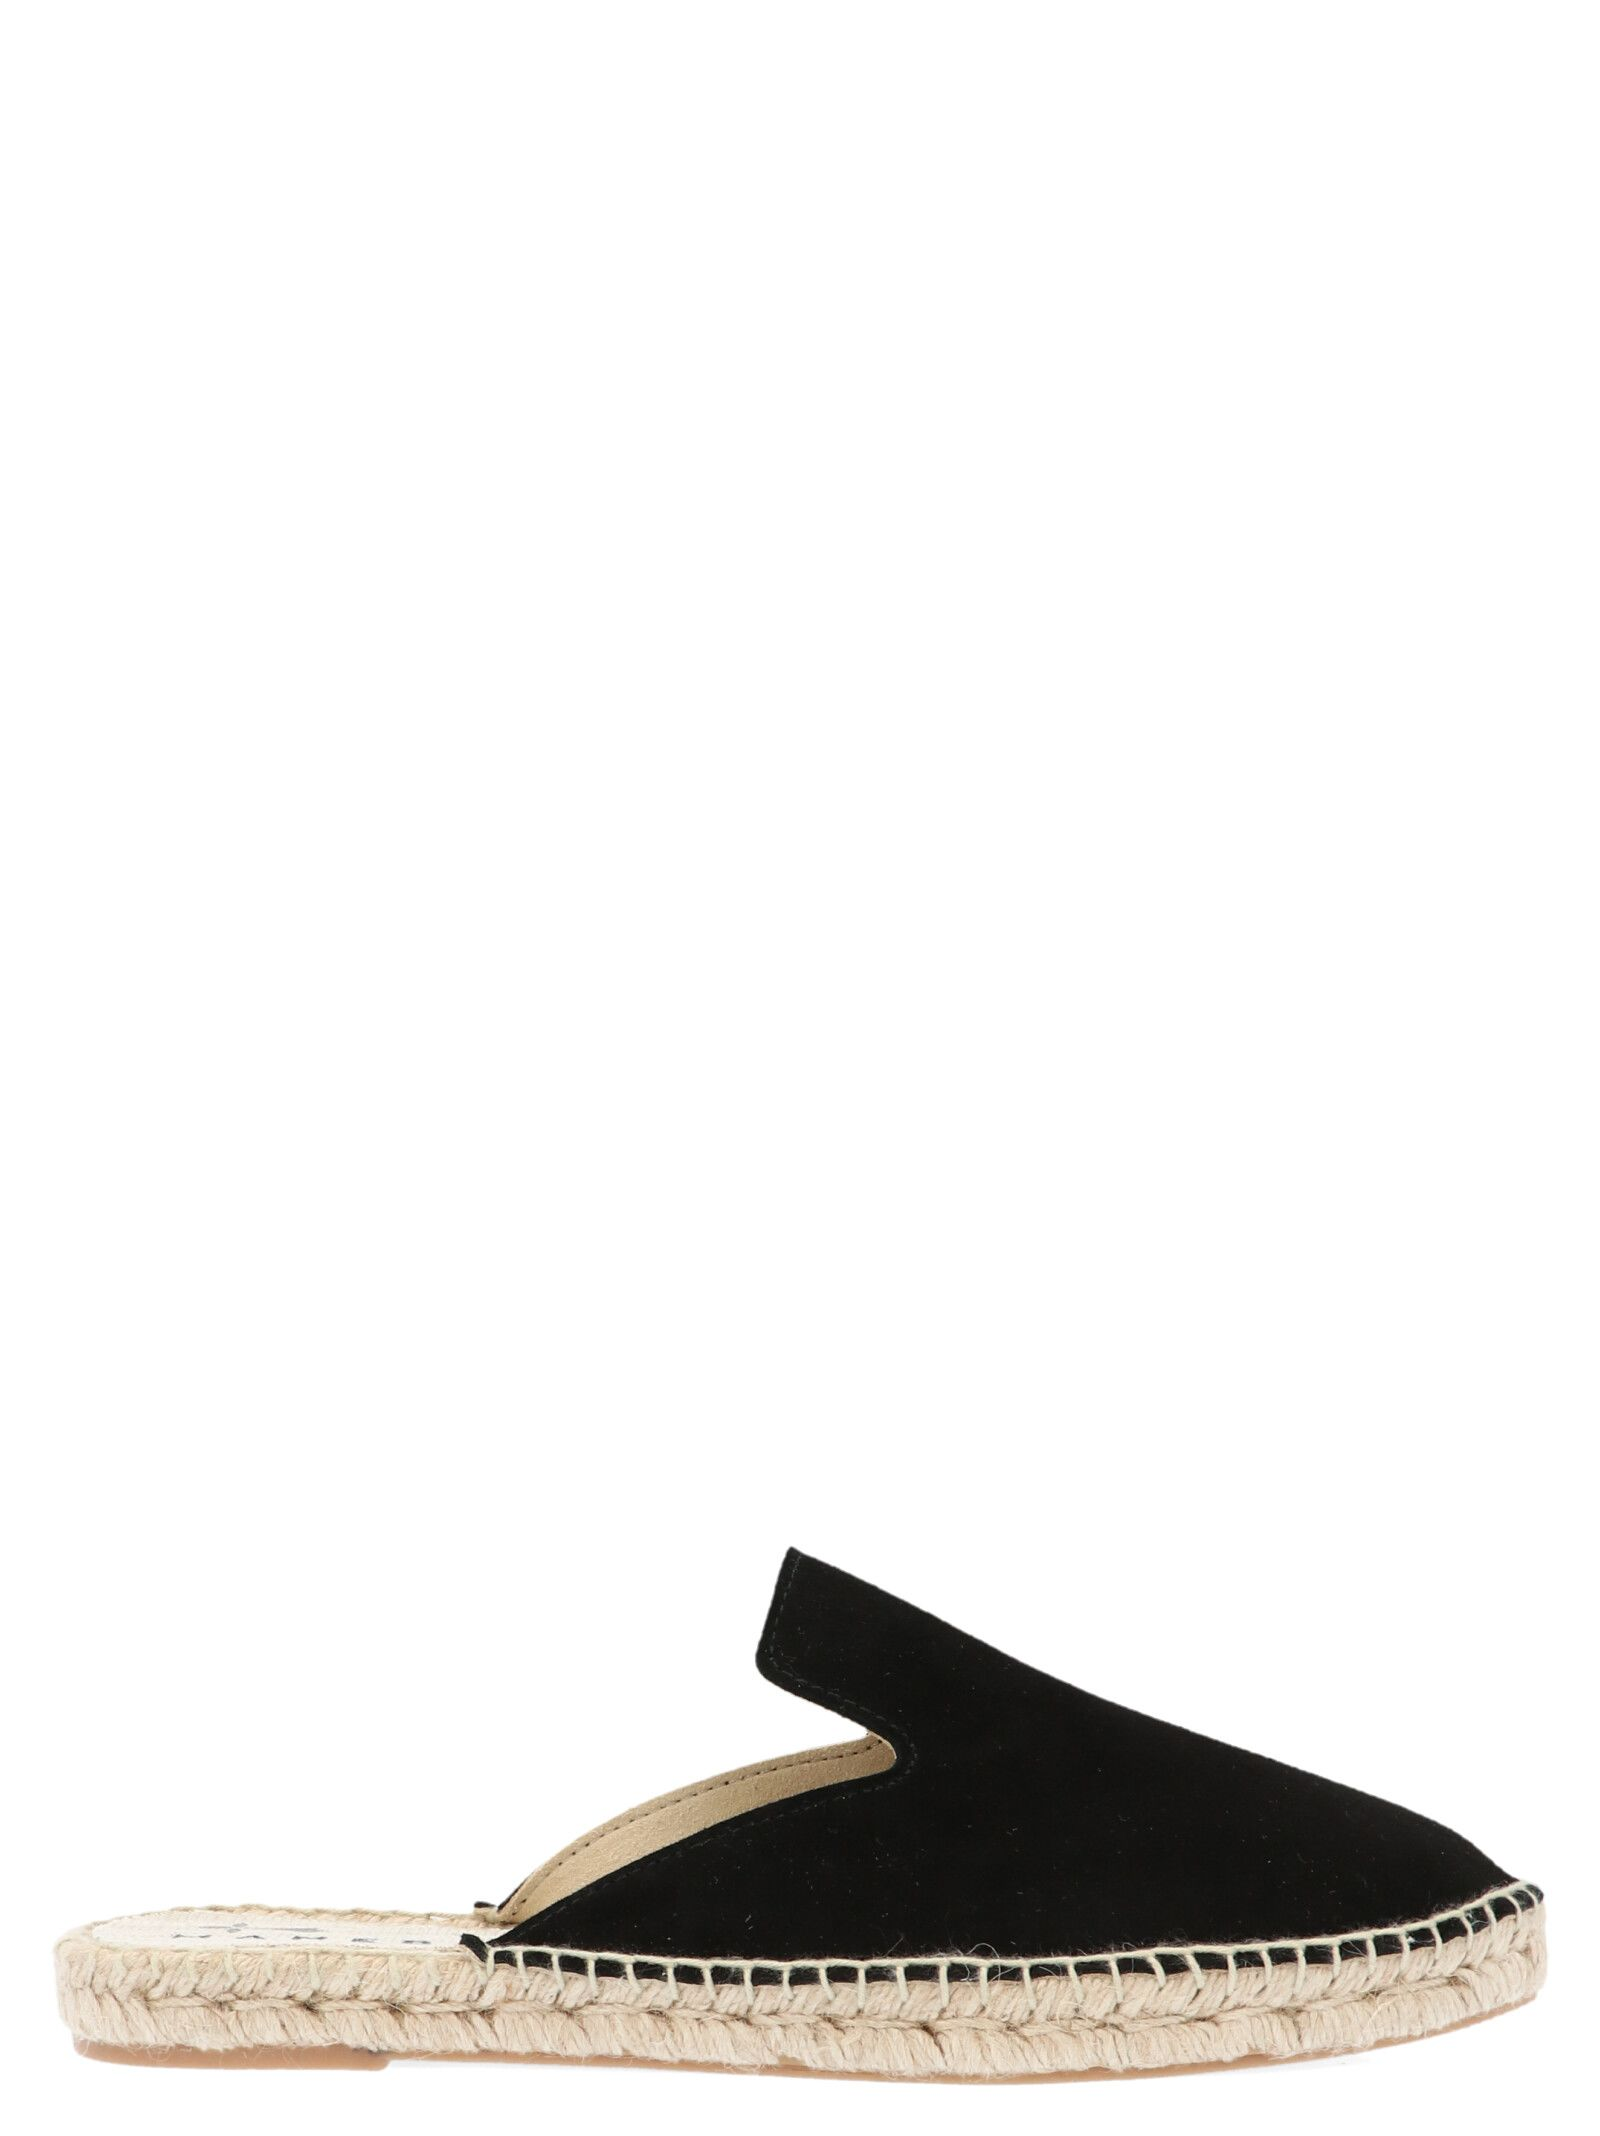 67c190b89 Manebi Manebi 'hamptons' Shoes - Black - 10916280 | italist